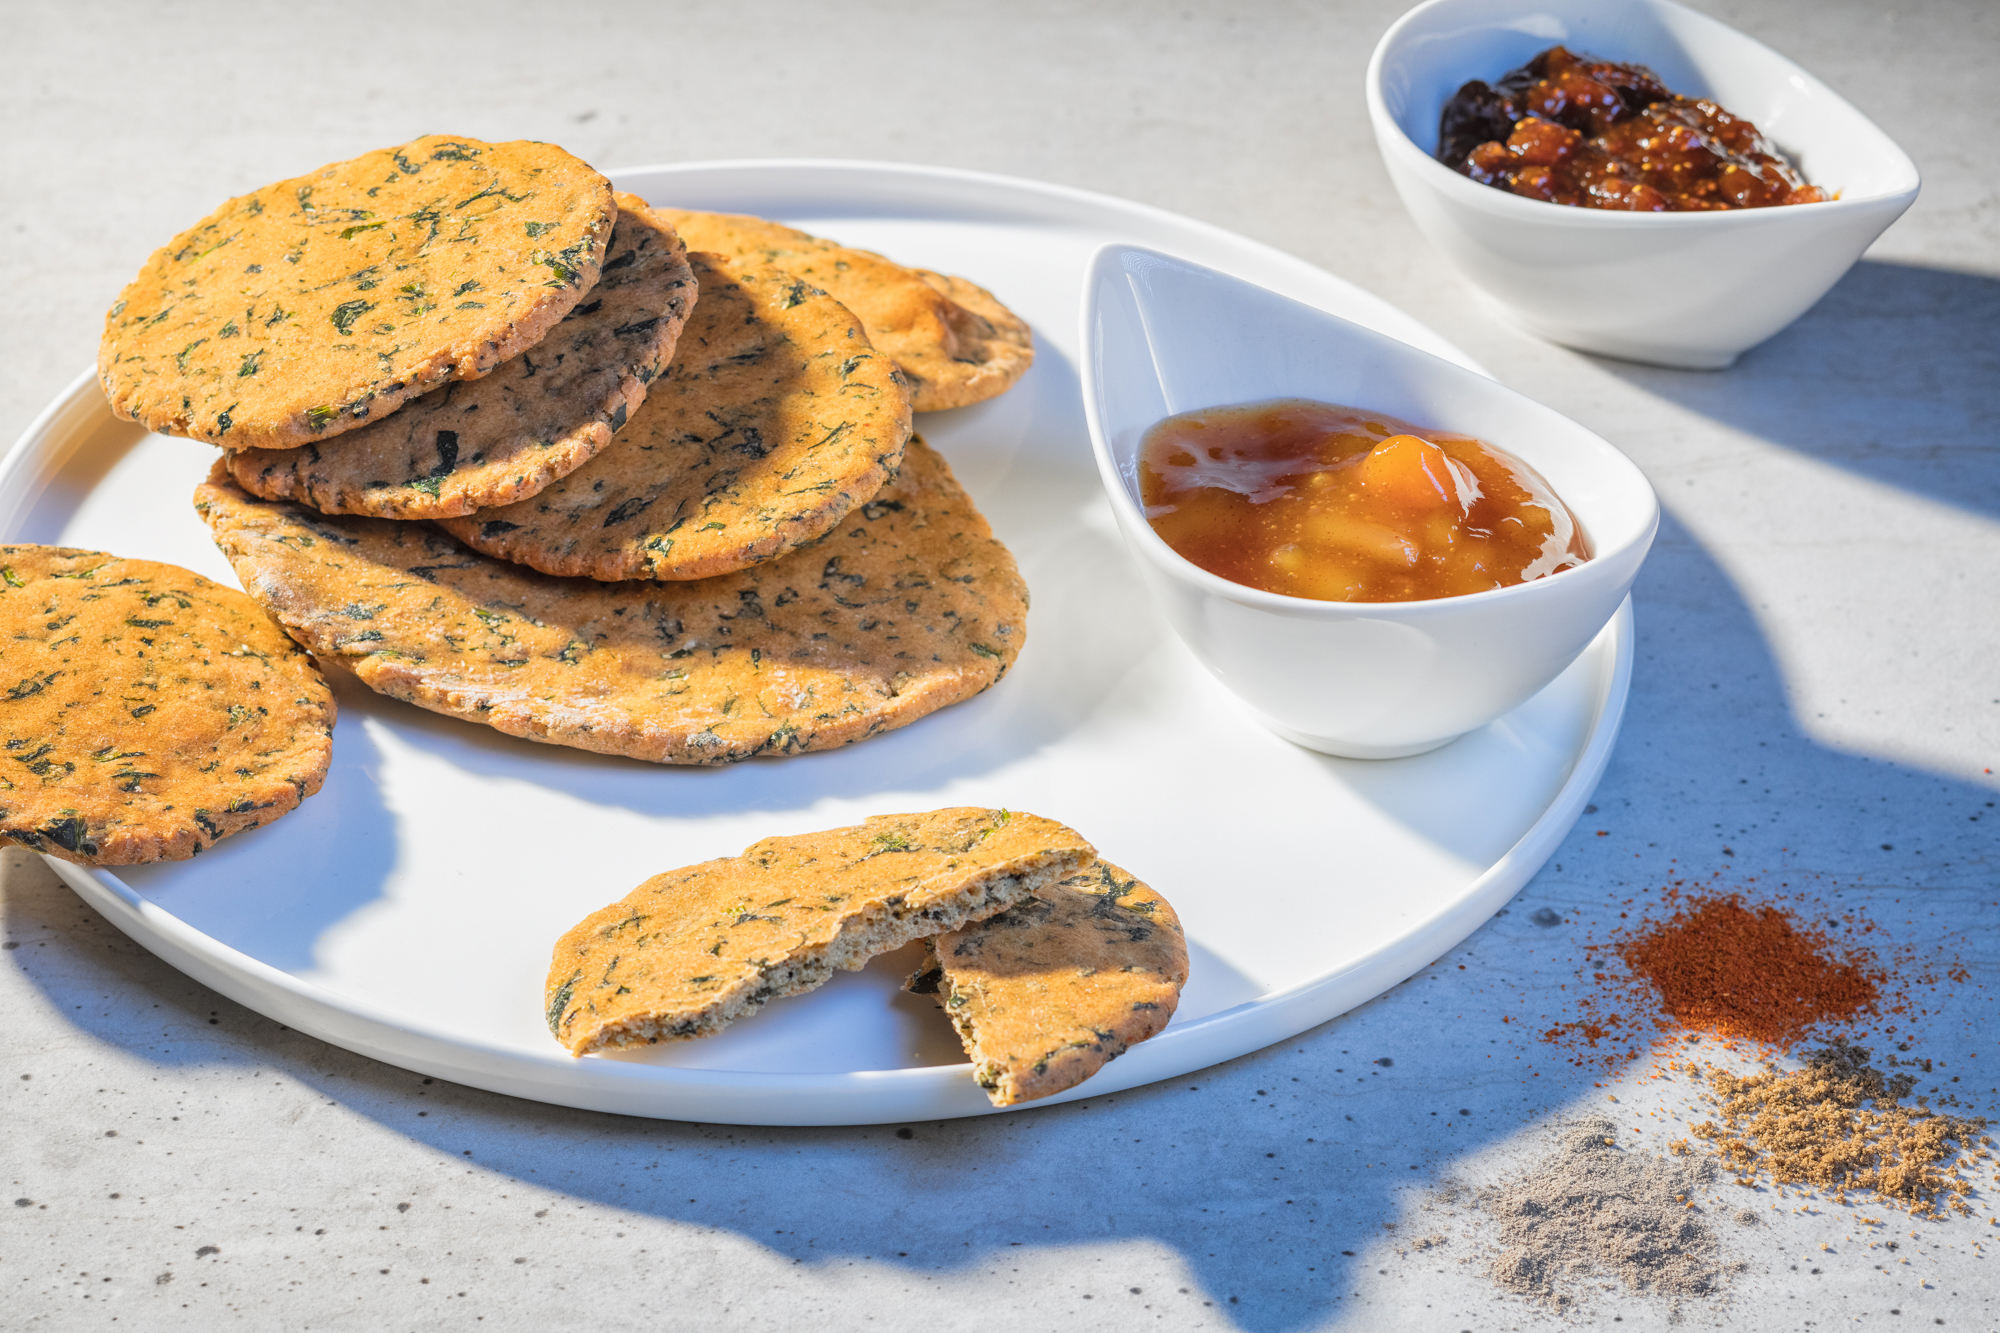 A white plate with Spinach-lentil Cookies, a dish with grape chutney and another dish with a spicy Indian sauce. depicted in bright afternoon summer light on a grey table. Three little hives of different spices are next to the plate.